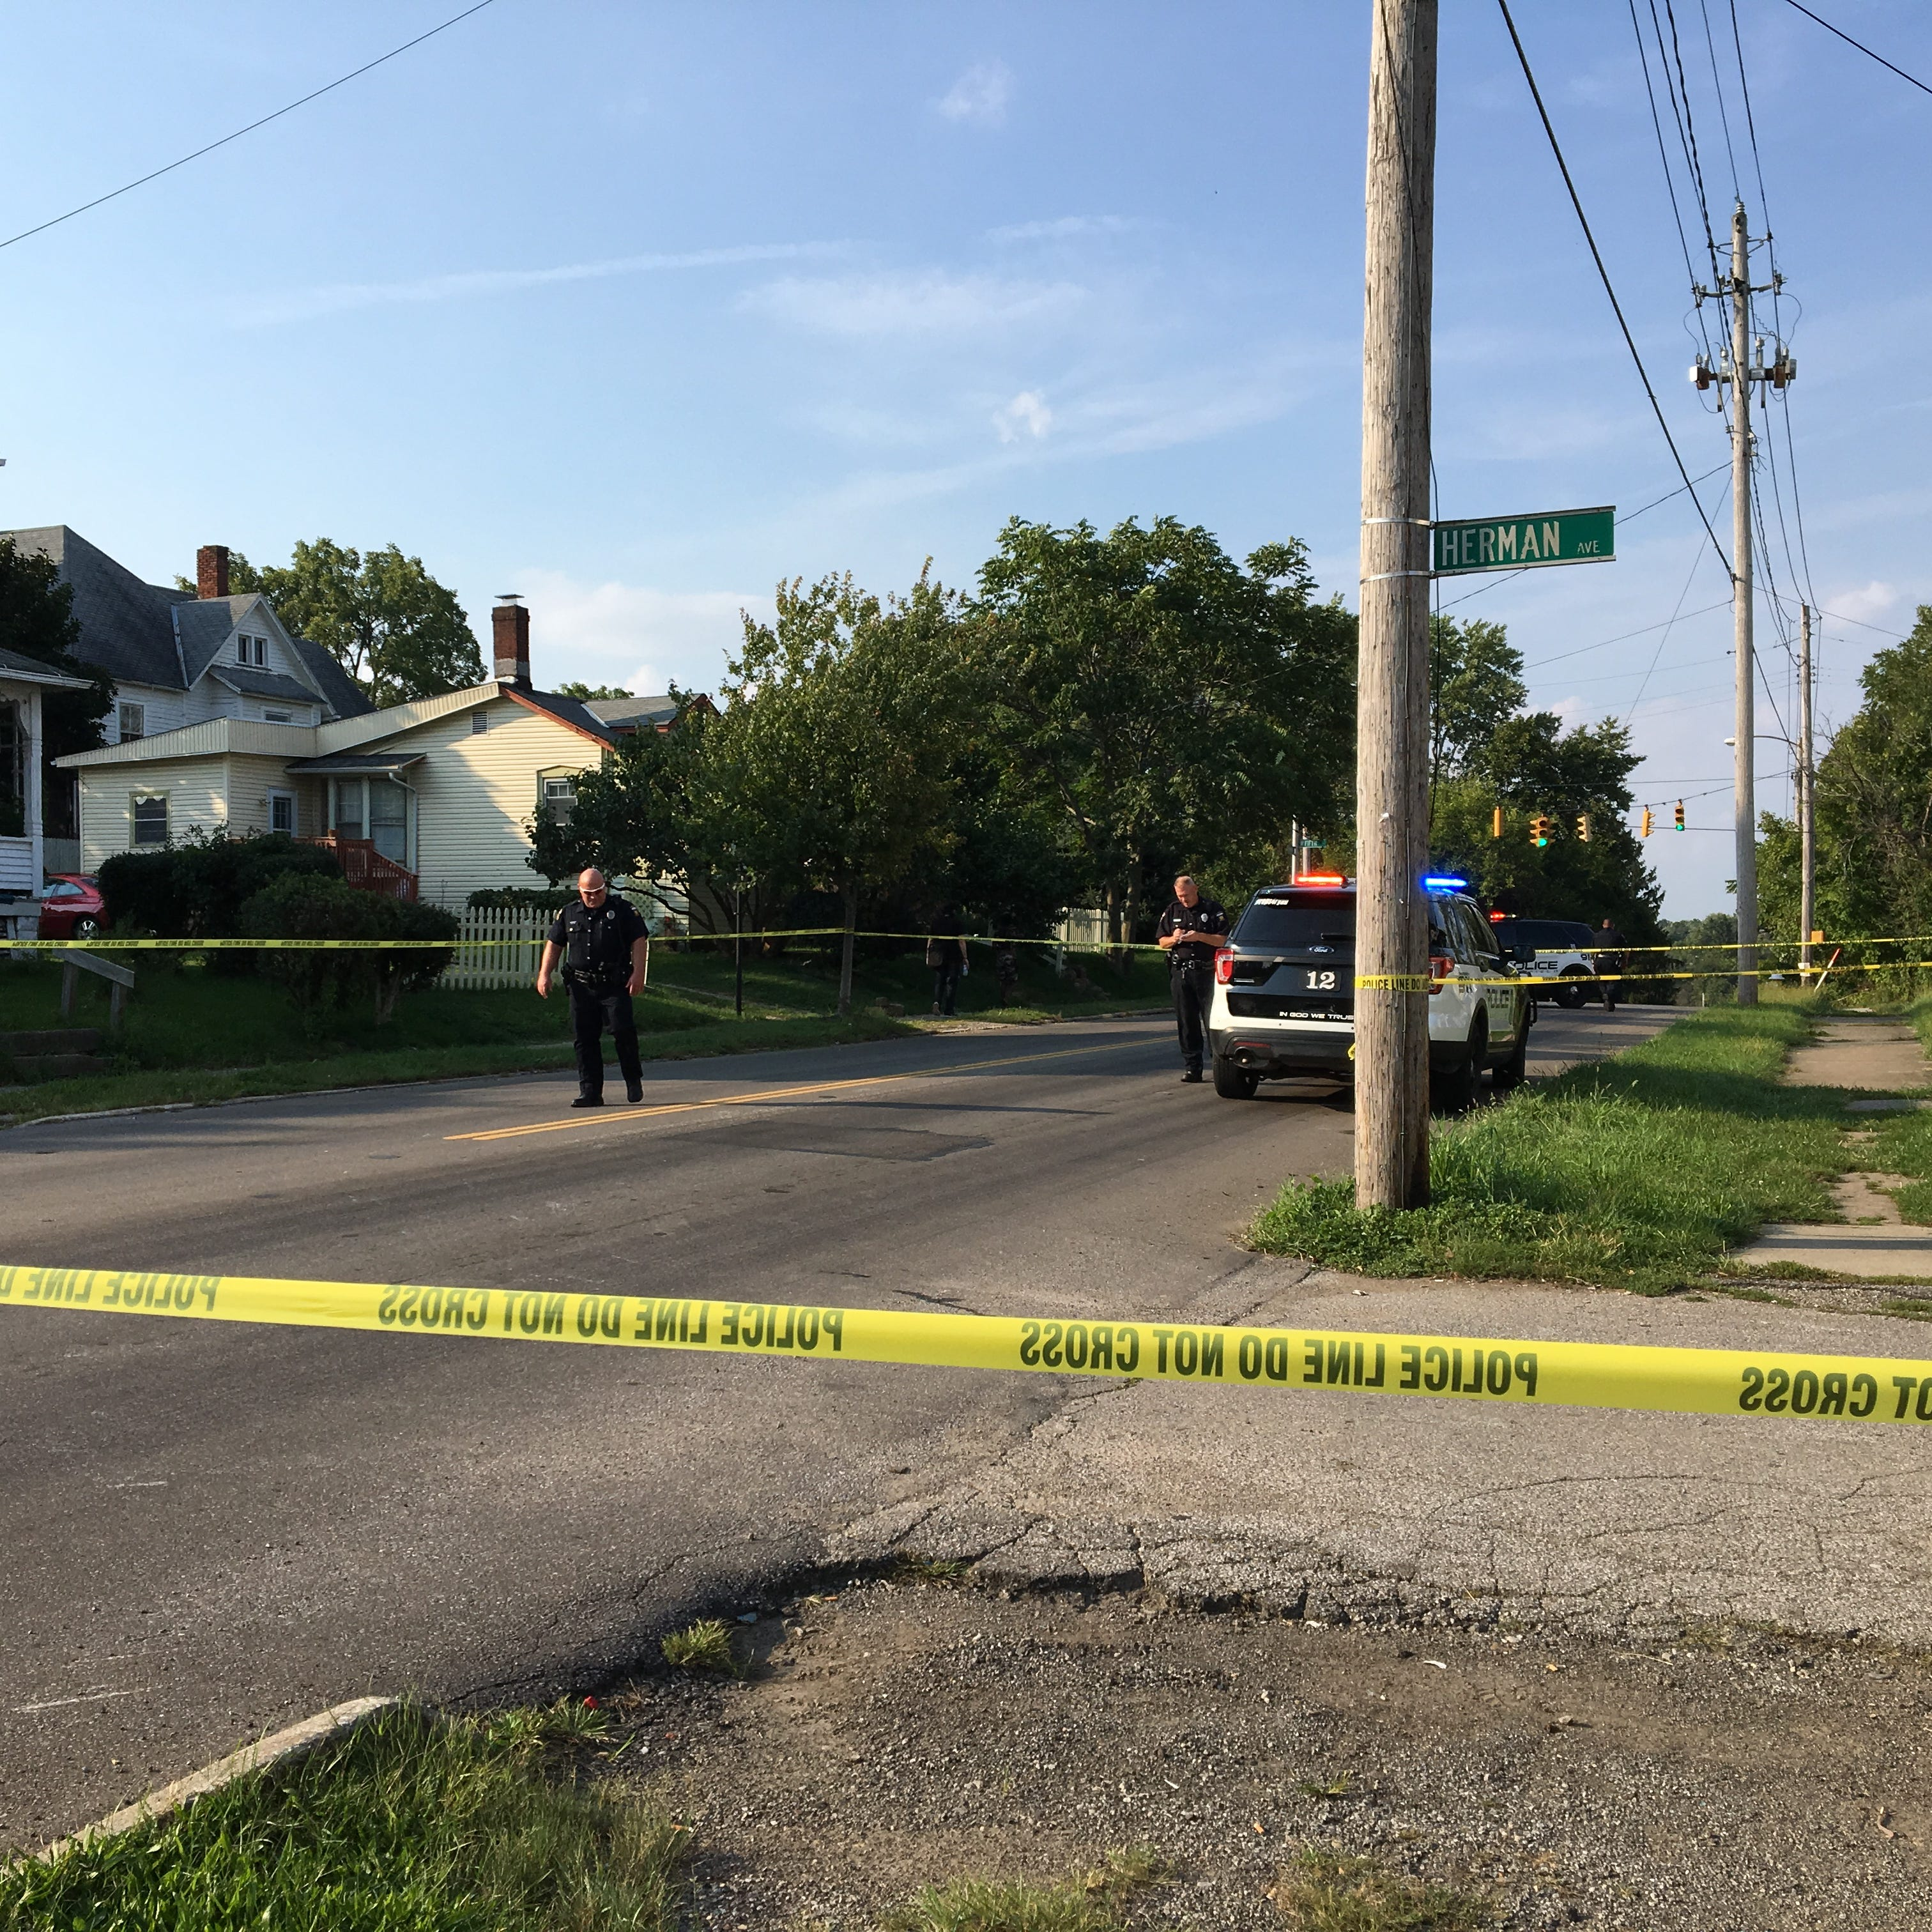 Man injured in Bowman Street drive-by shooting